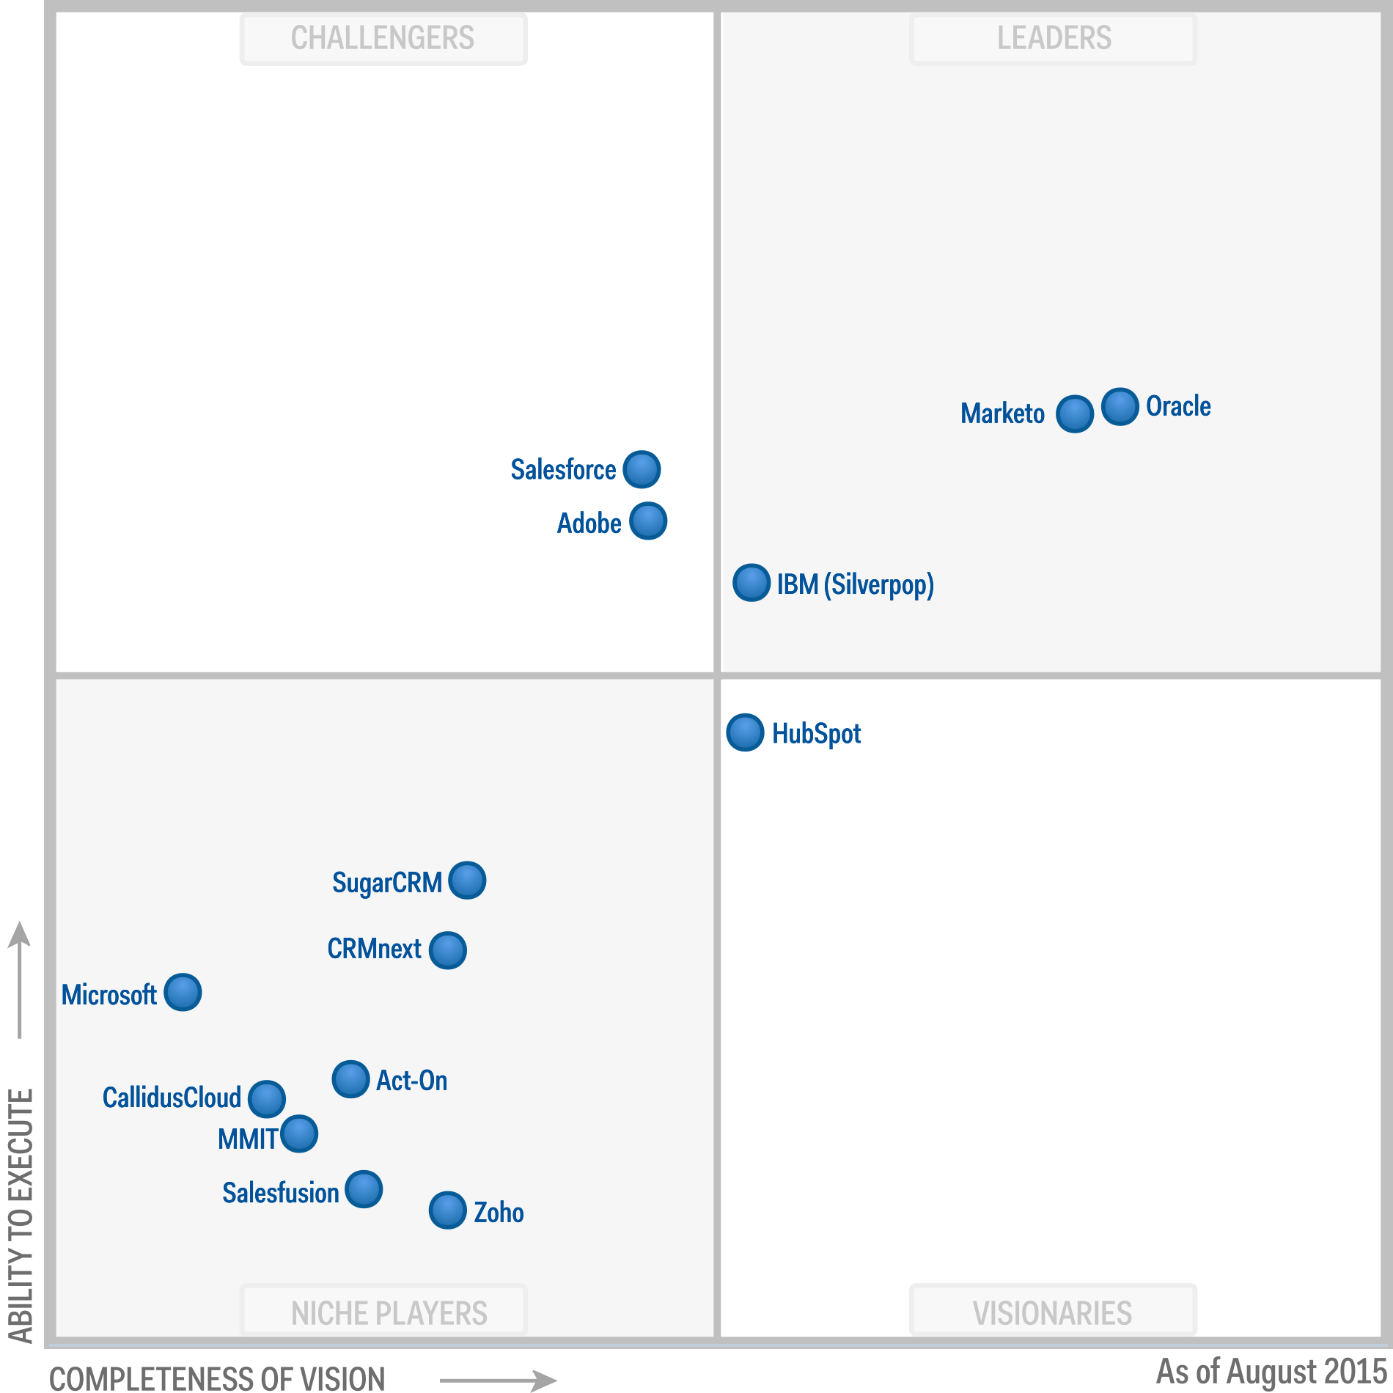 Magic Quadrant for CRM Lead Management 2015 (G00277054)